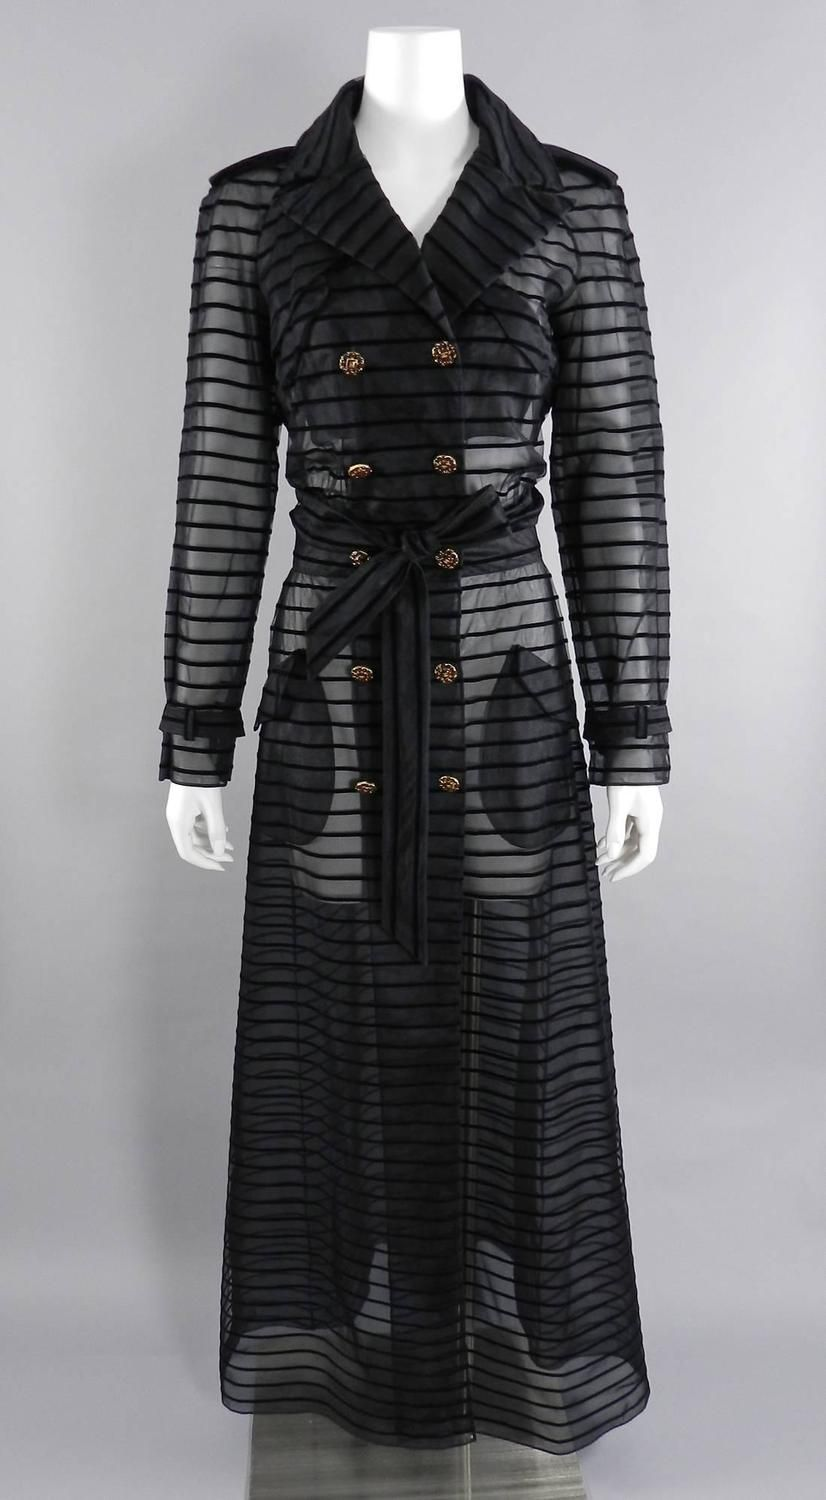 Chanel 10C Long Sheer Black Striped duster Jacket with Gripoix Buttons